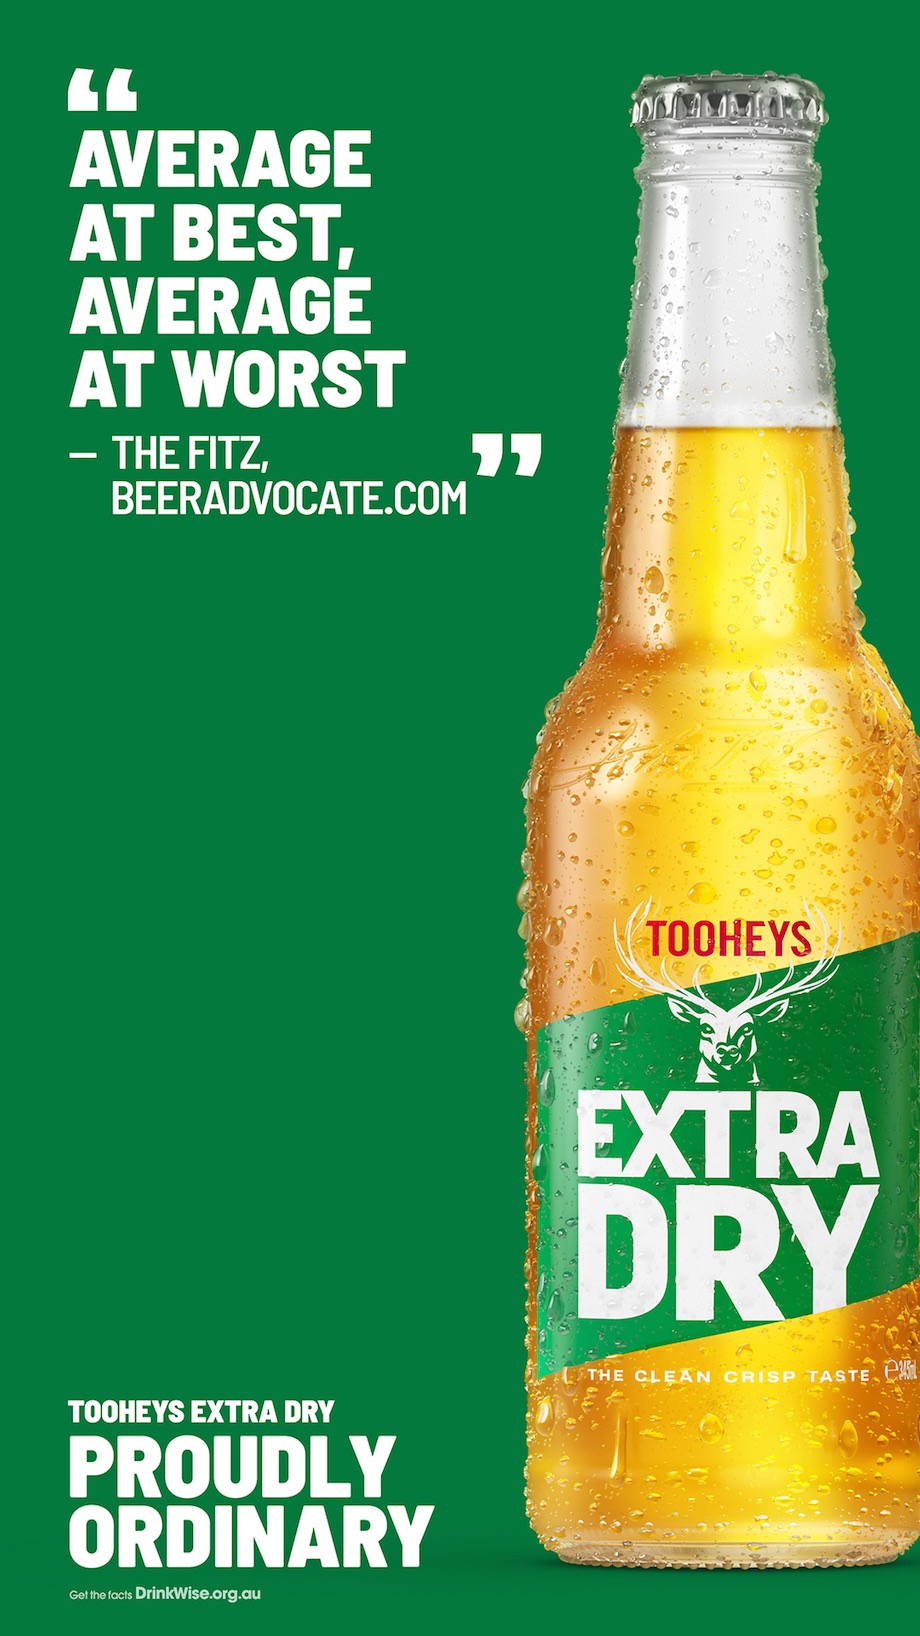 Tooheys Extra Dry celebrates their 'Proudly Ordinary' Aussie beer in animated campaign via 72andSunny